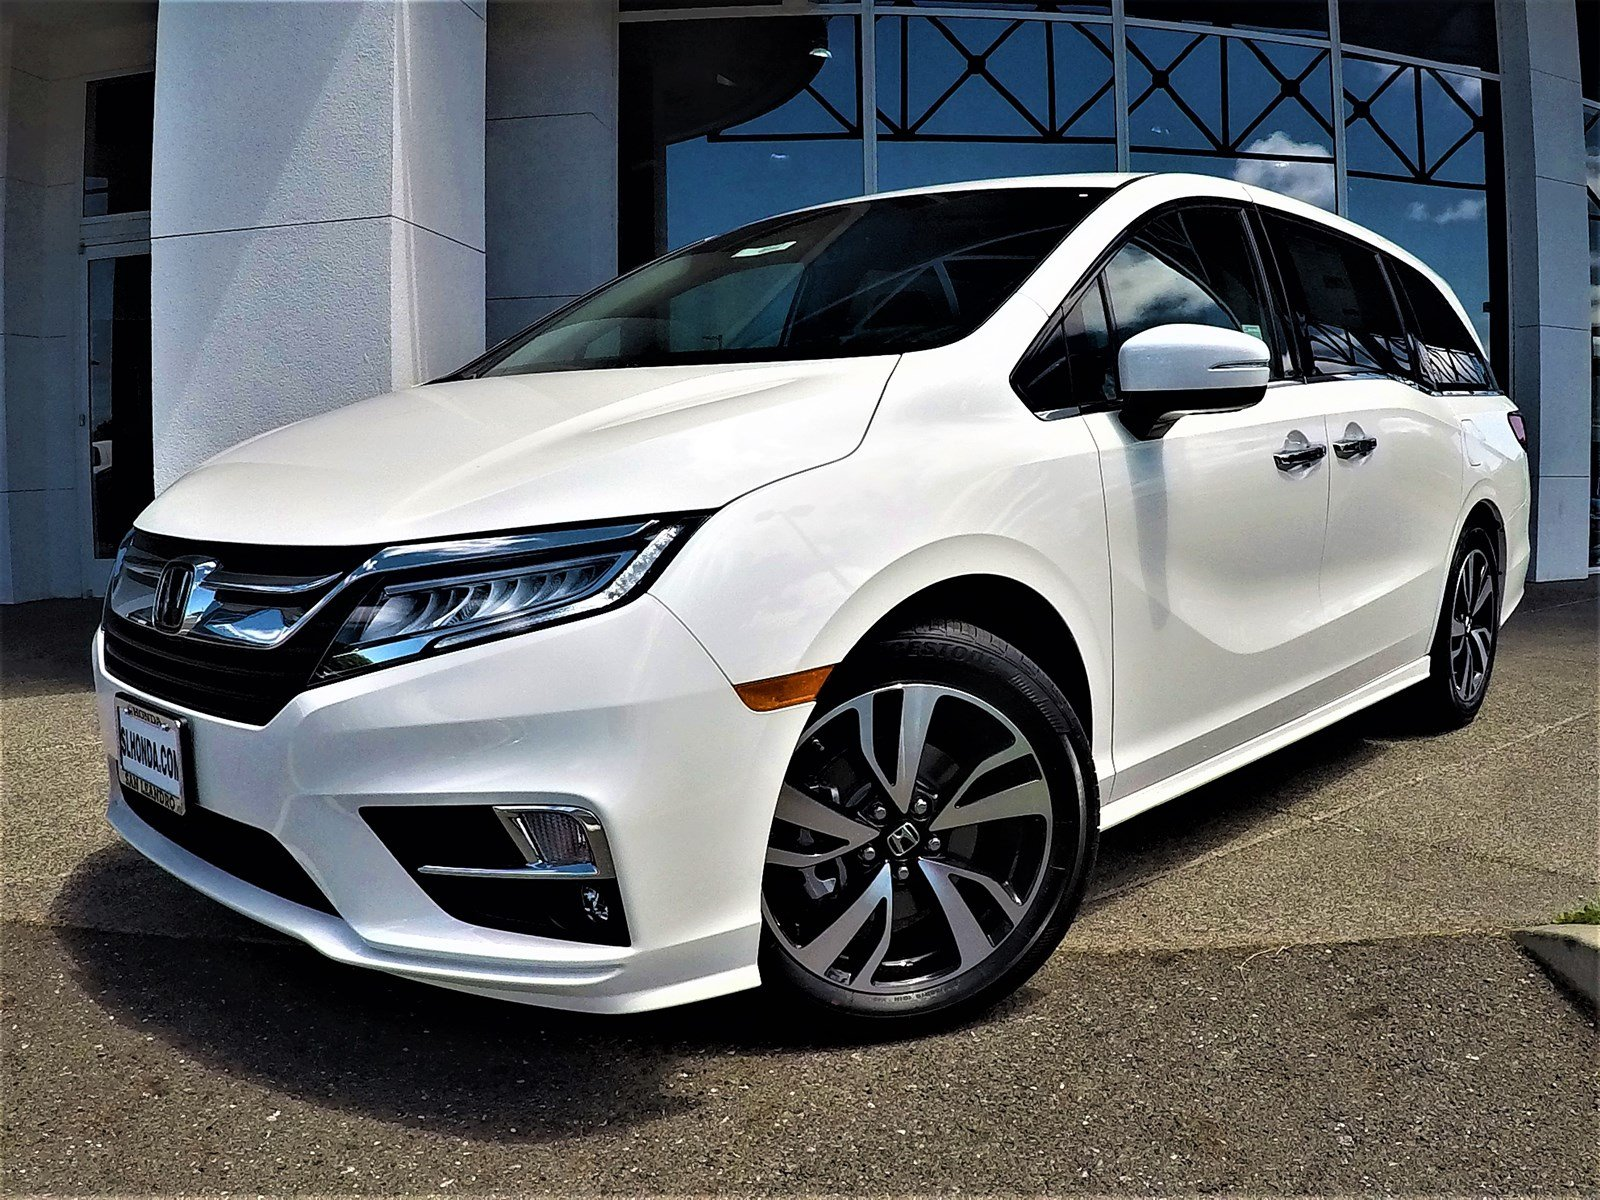 2018 honda odyssey sales event in bay area oakland alameda for Honda odyssey lease price